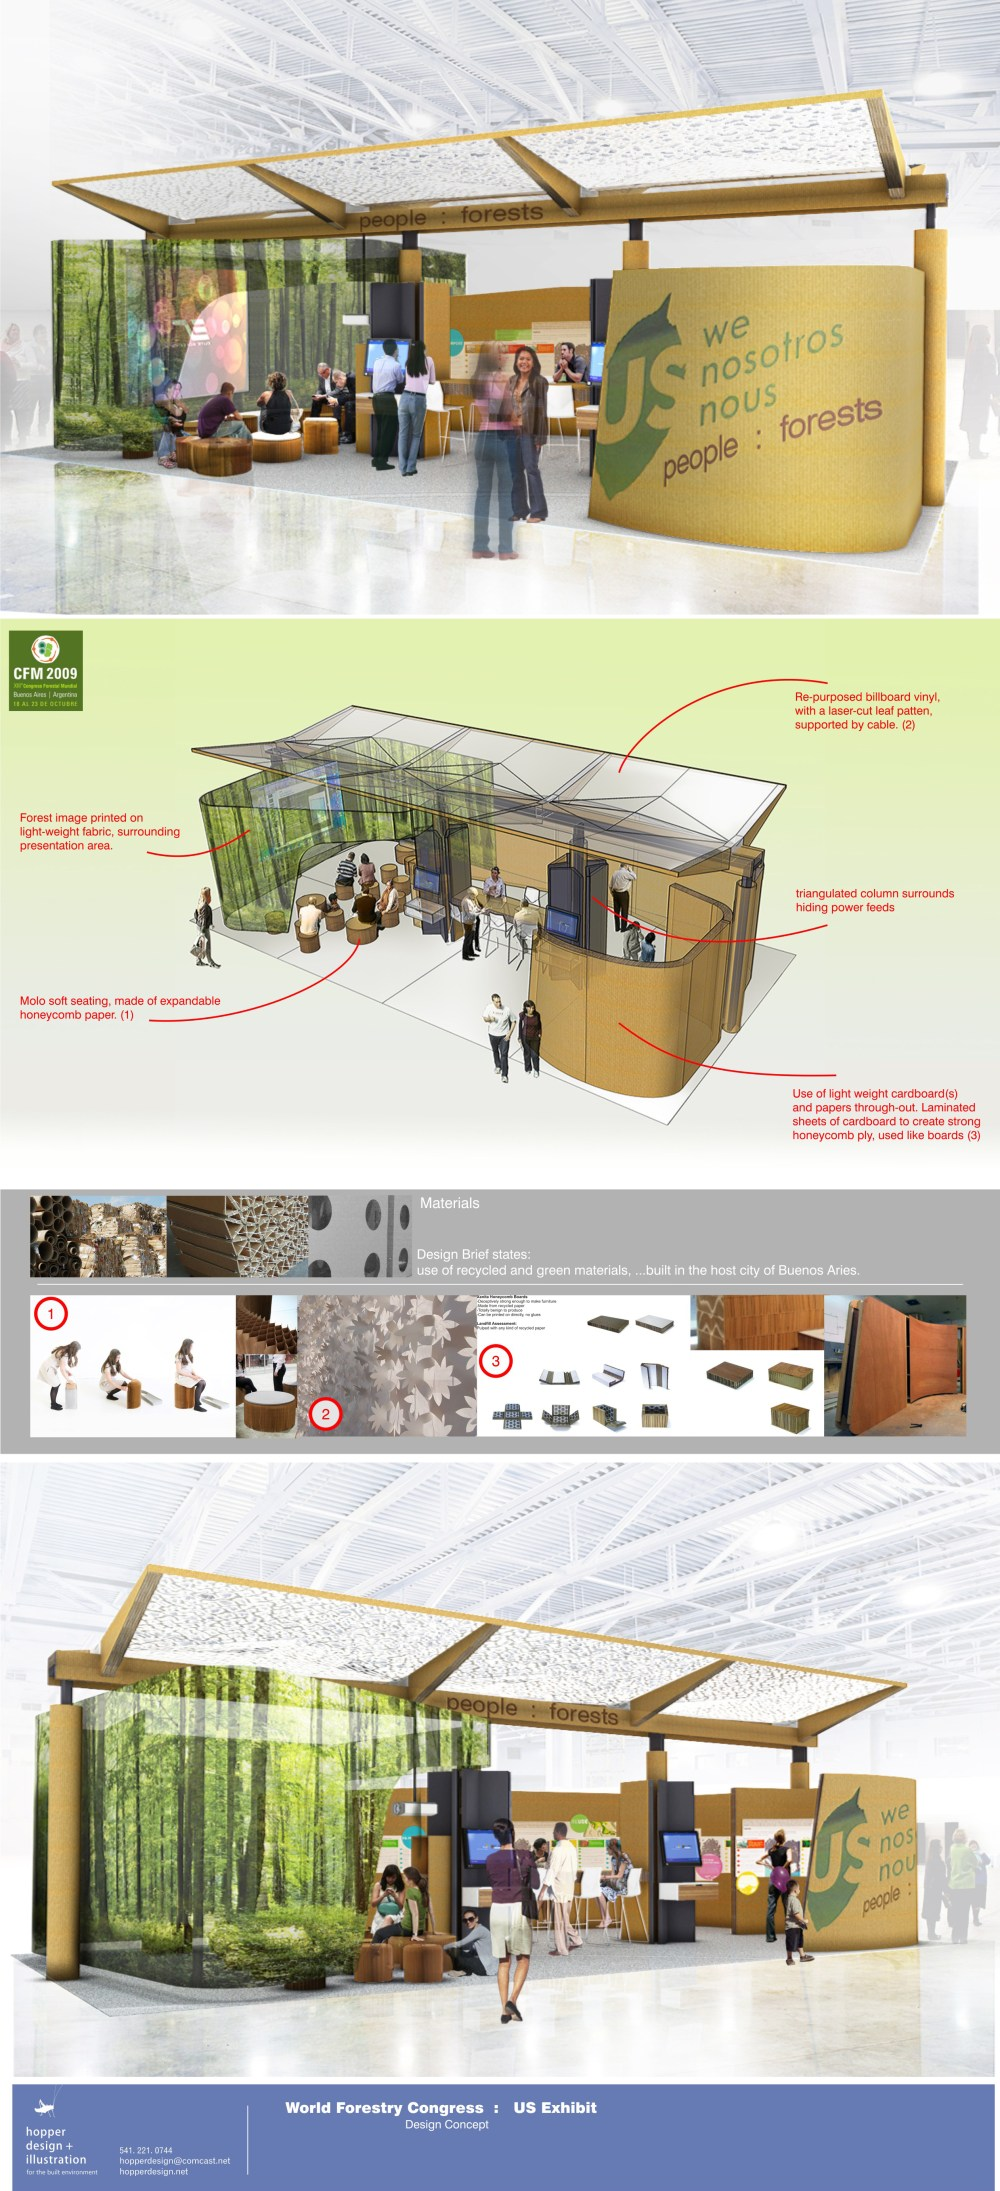 hopper_di_world_forestry_congress_layout